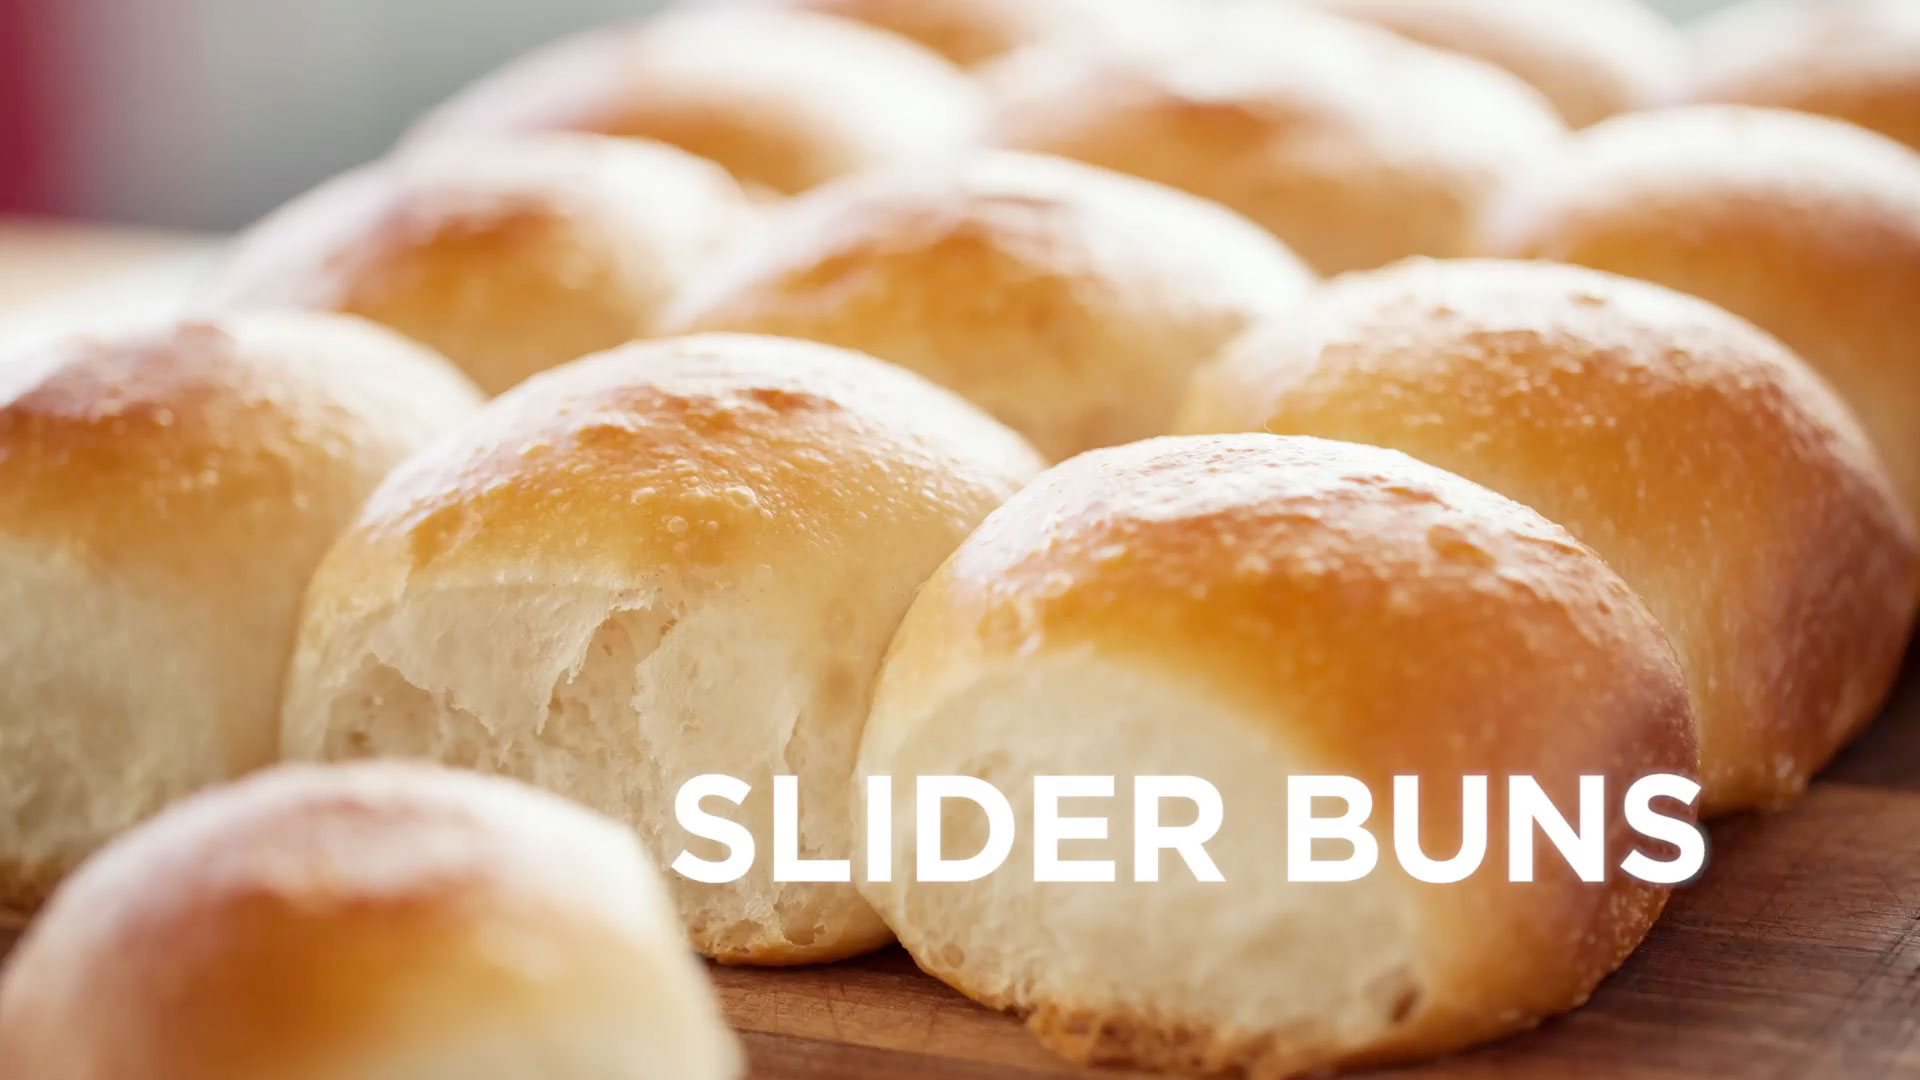 How to Make Slider Buns at Home